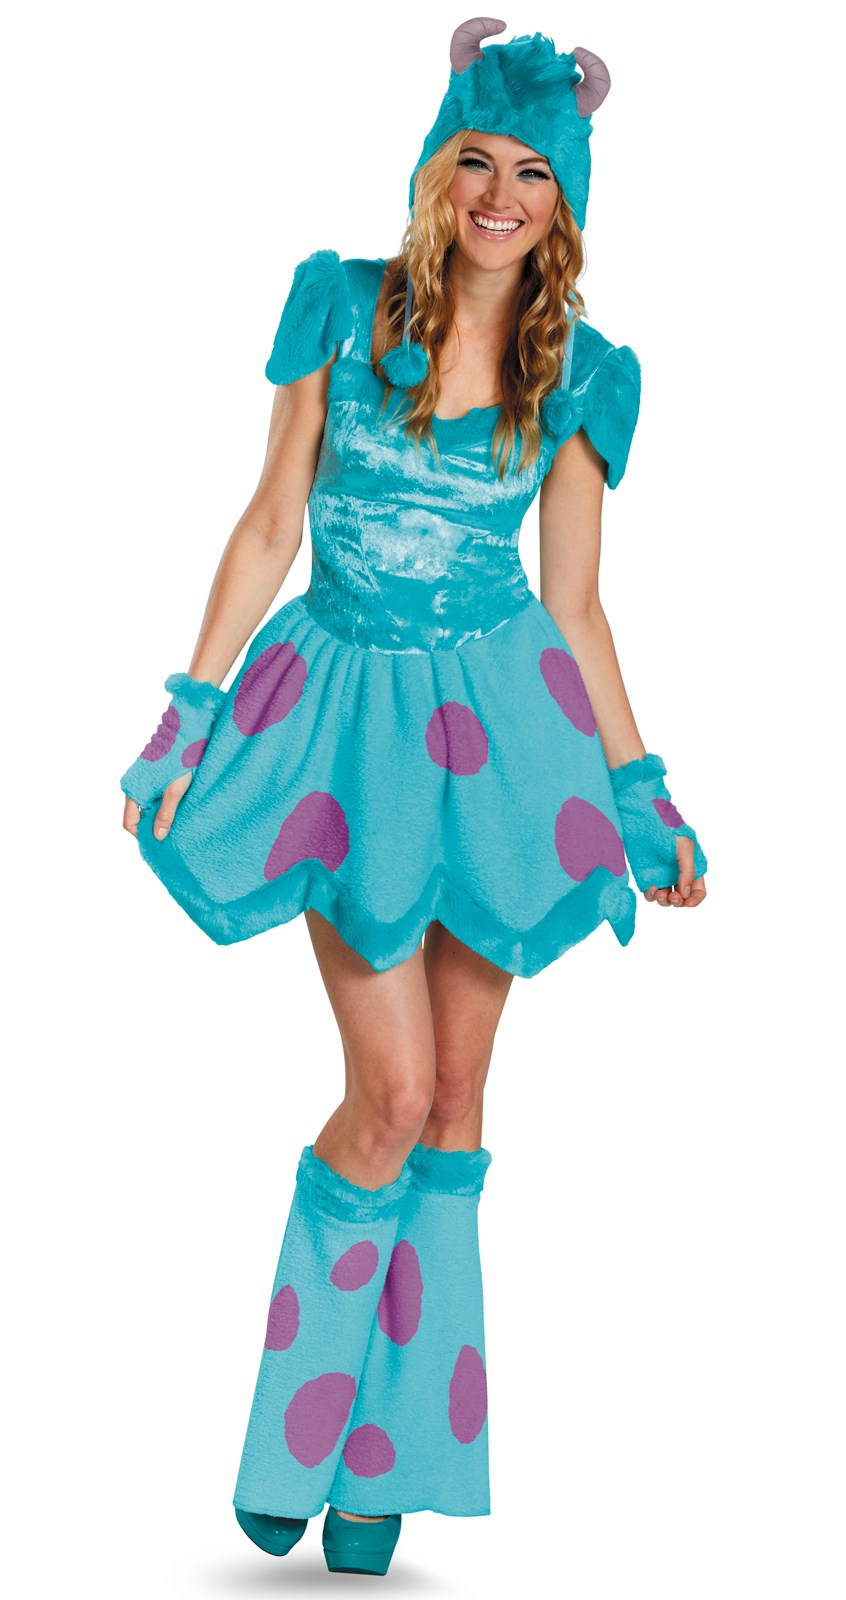 Image of Monsters University Sassy Sulley Adult Costume